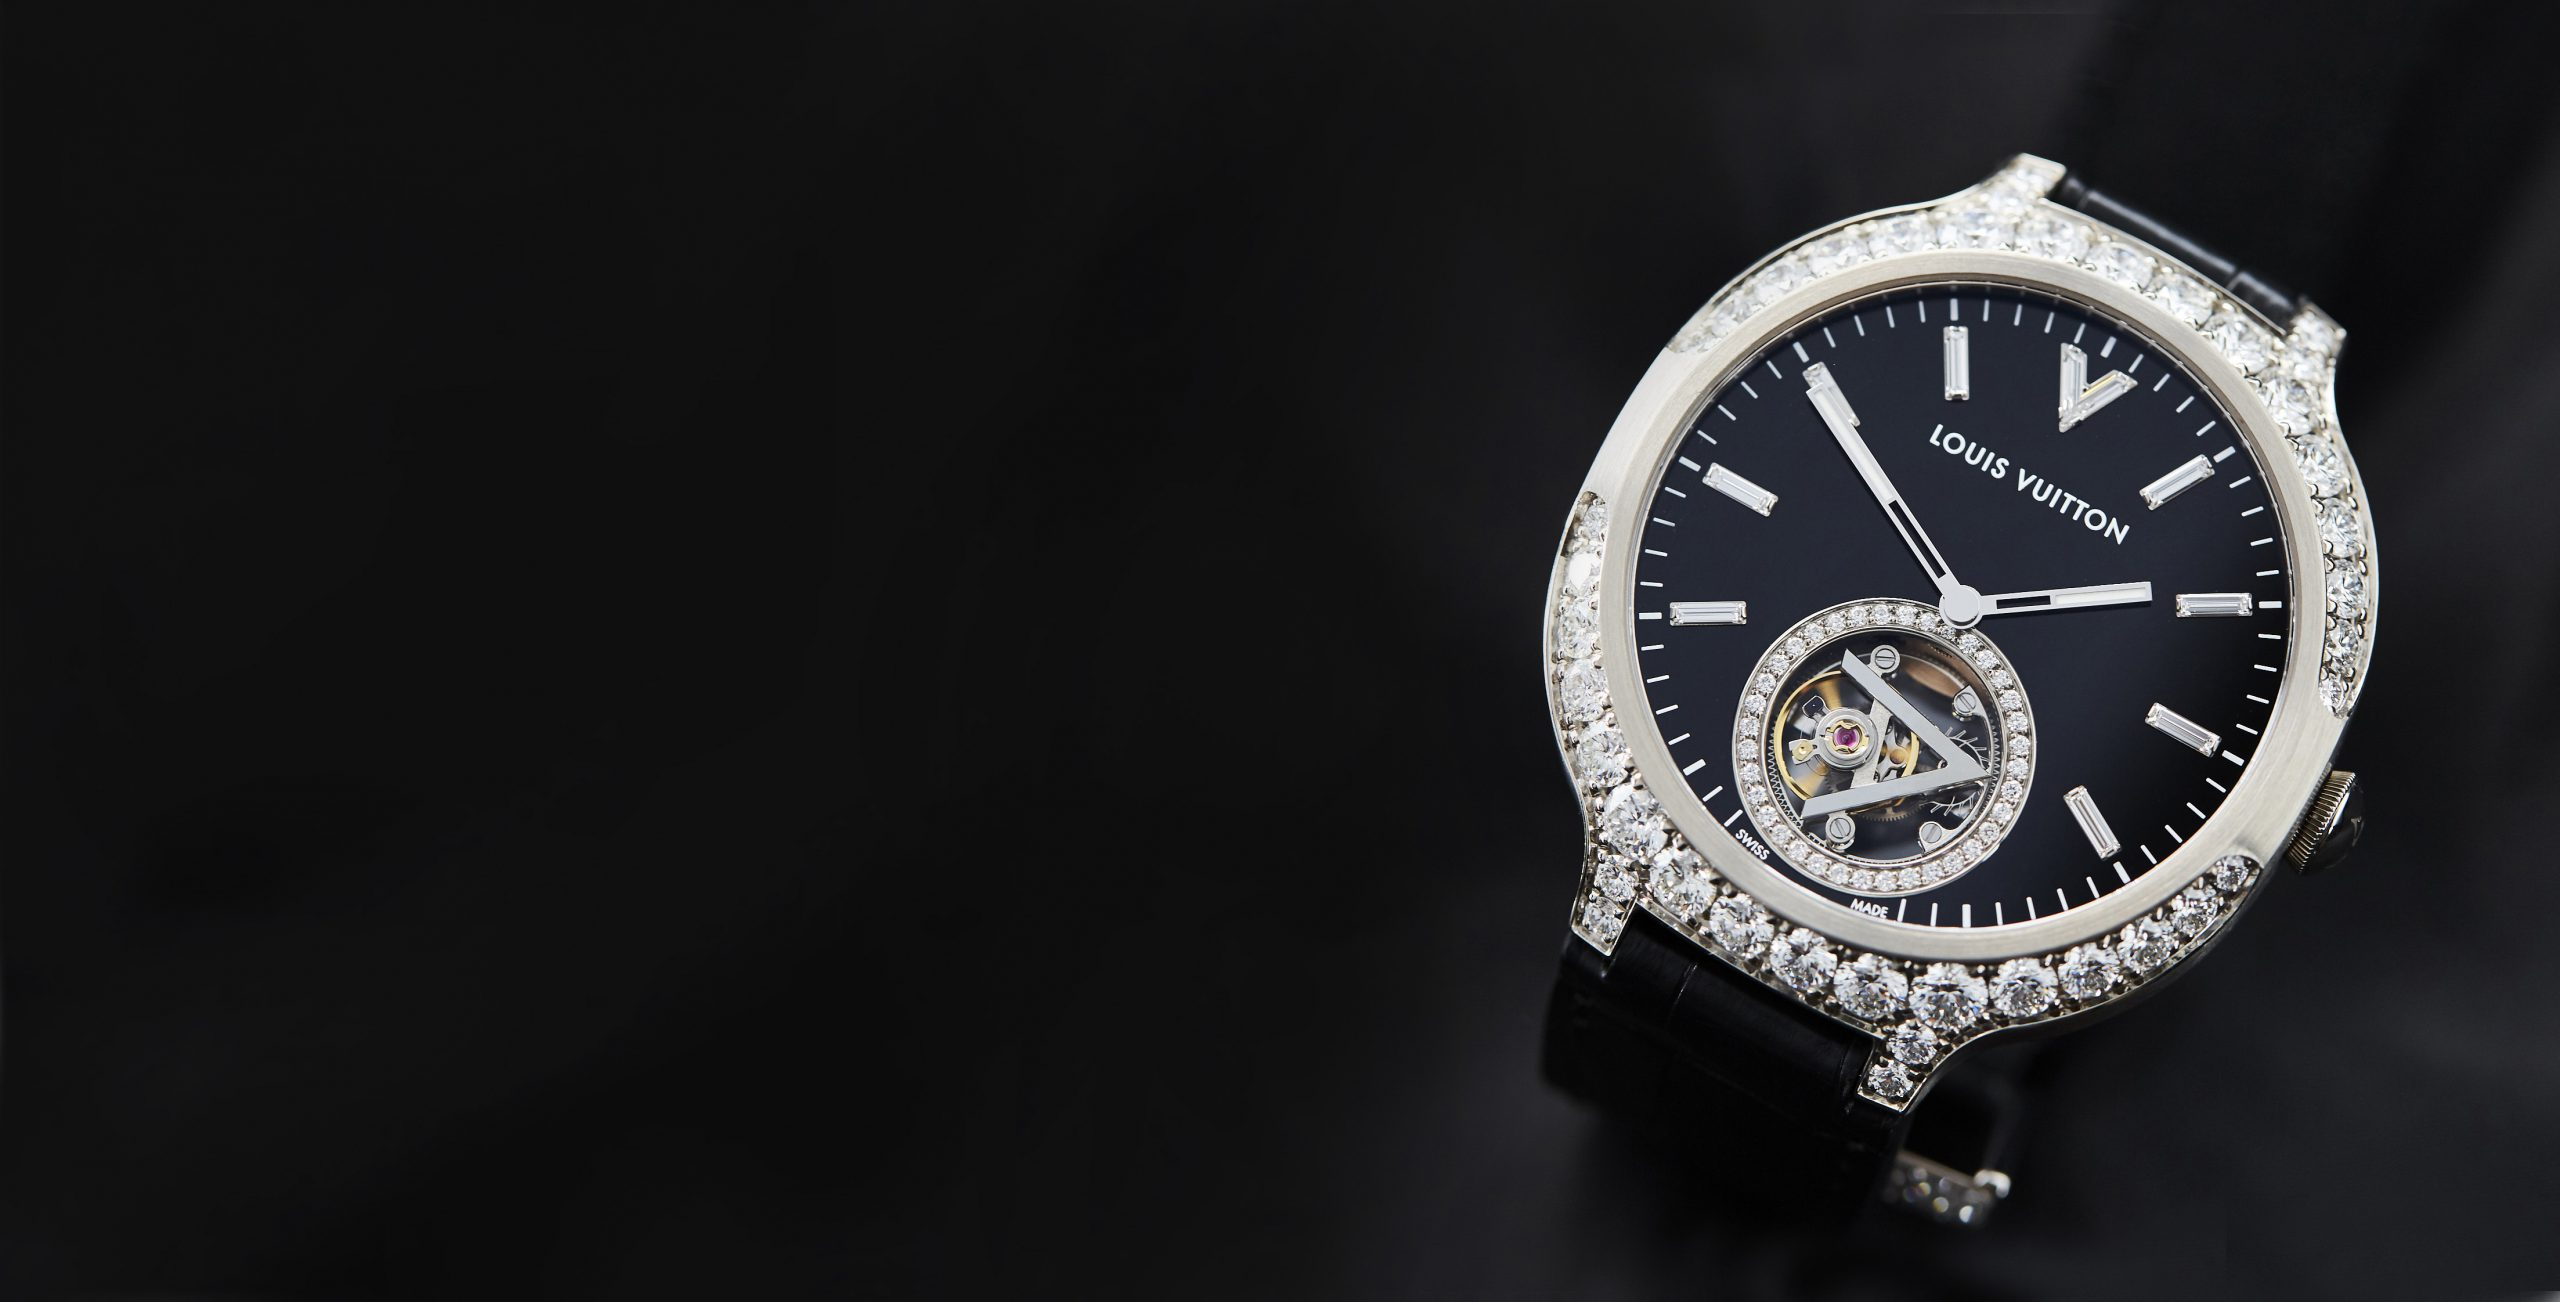 If you're interested in Geneva Seal standard watchmaking, this Louis Vuitton 'high watch collection' wants to meet you